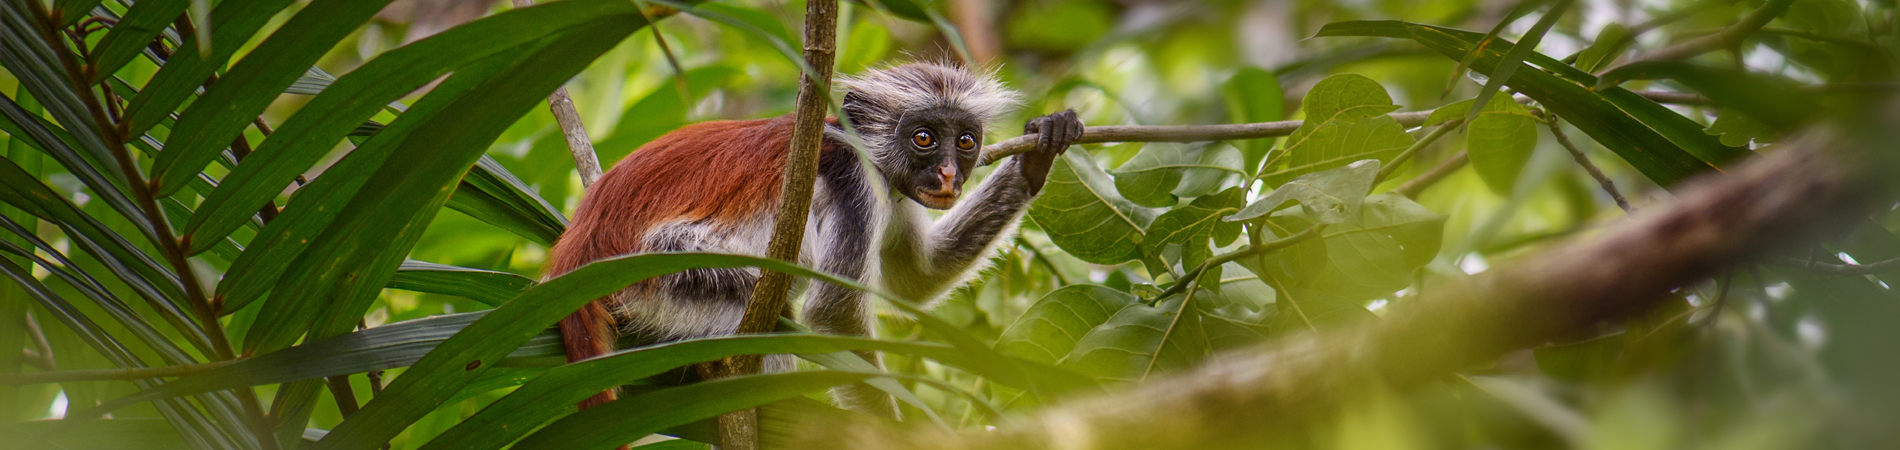 shutterstock znz header red colobus